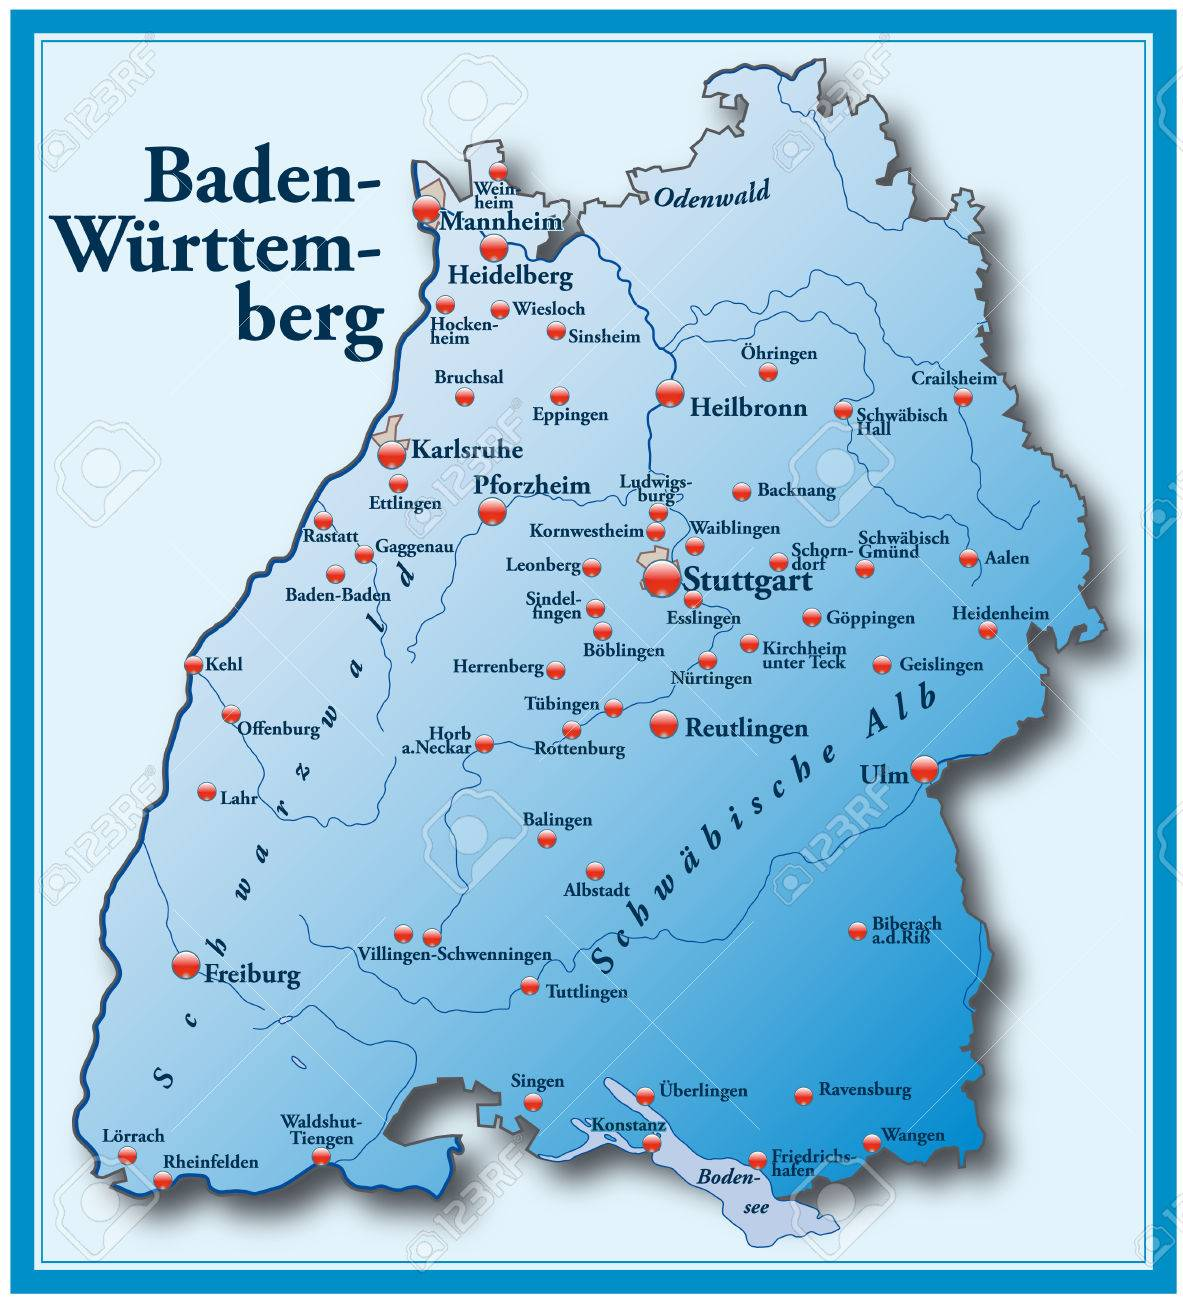 Map Of Baden Wuerttemberg As An Overview Map In Blue Royalty Free